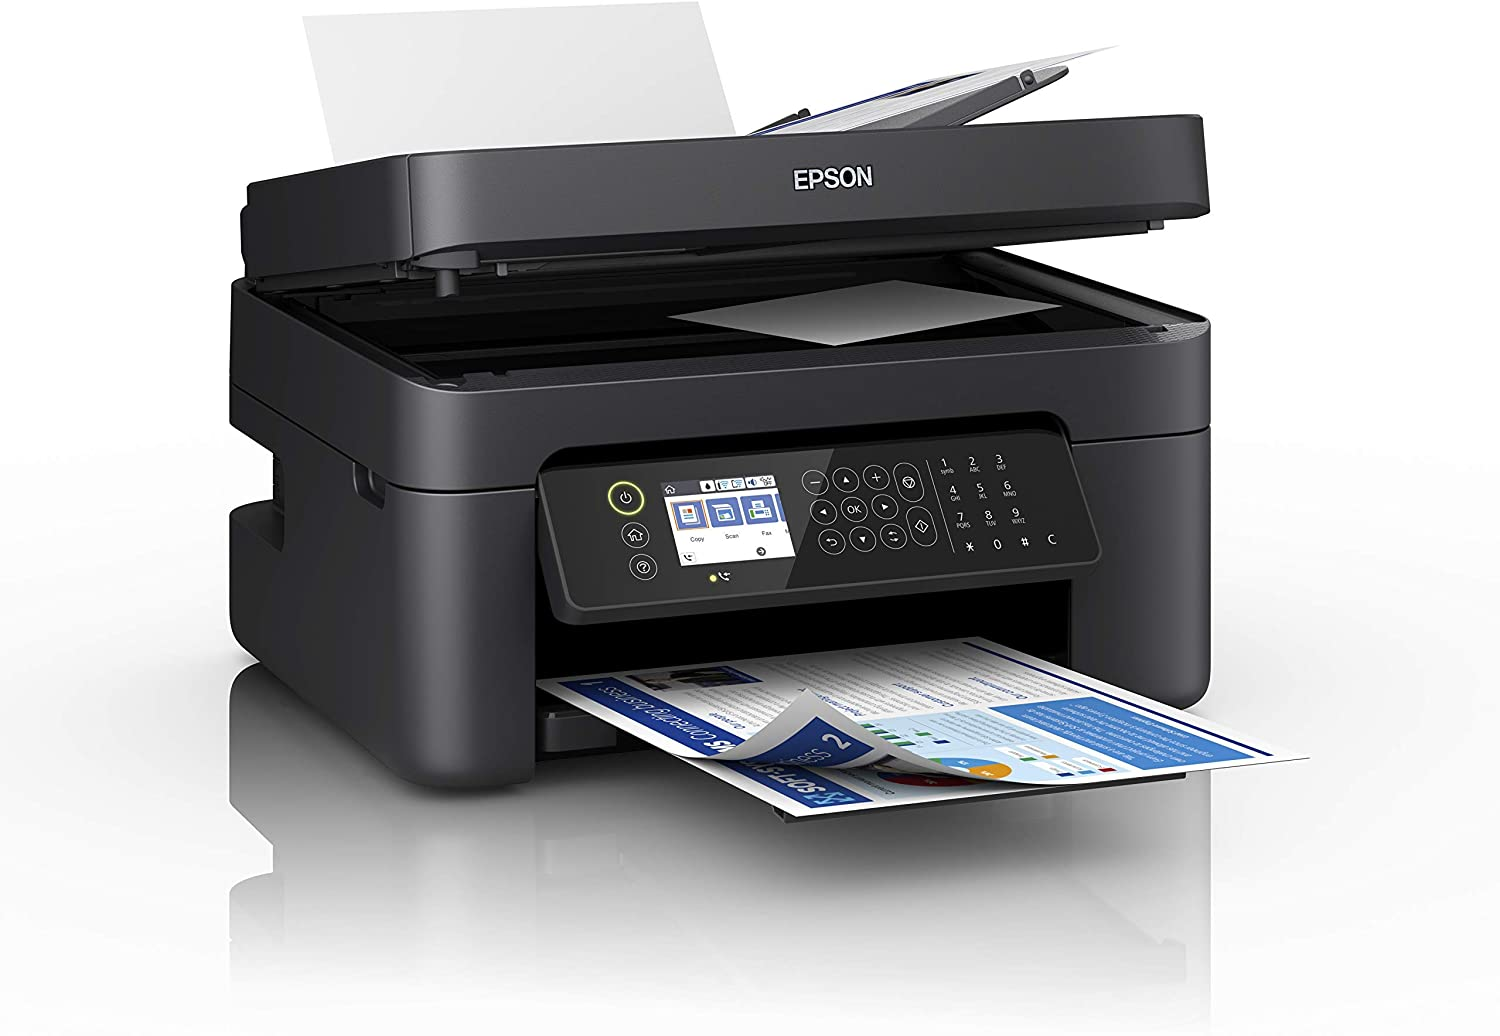 Epson WorkForce WF-2850DWF Print/Scan/Copy/Fax Wi-Fi Printer with ADF, Black Image